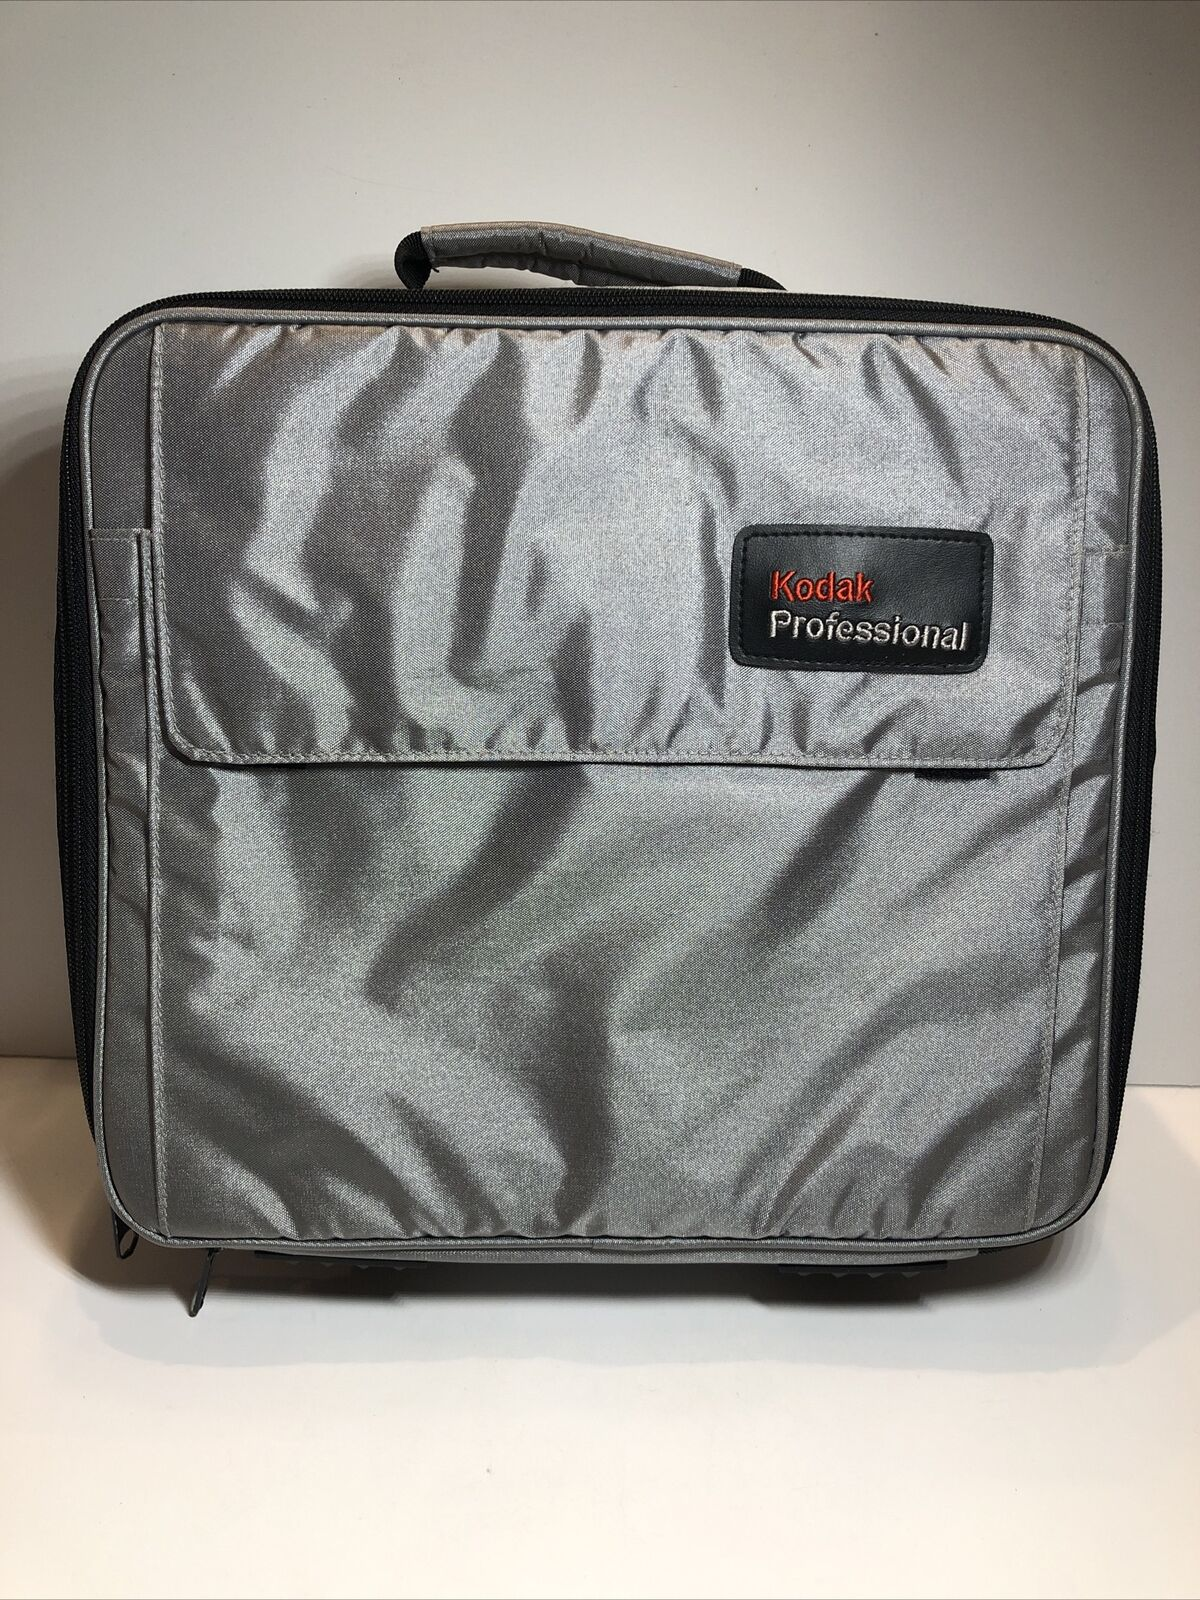 Kodak Professional Projector Padded Soft Case ONLY With Handle No Strap EUC